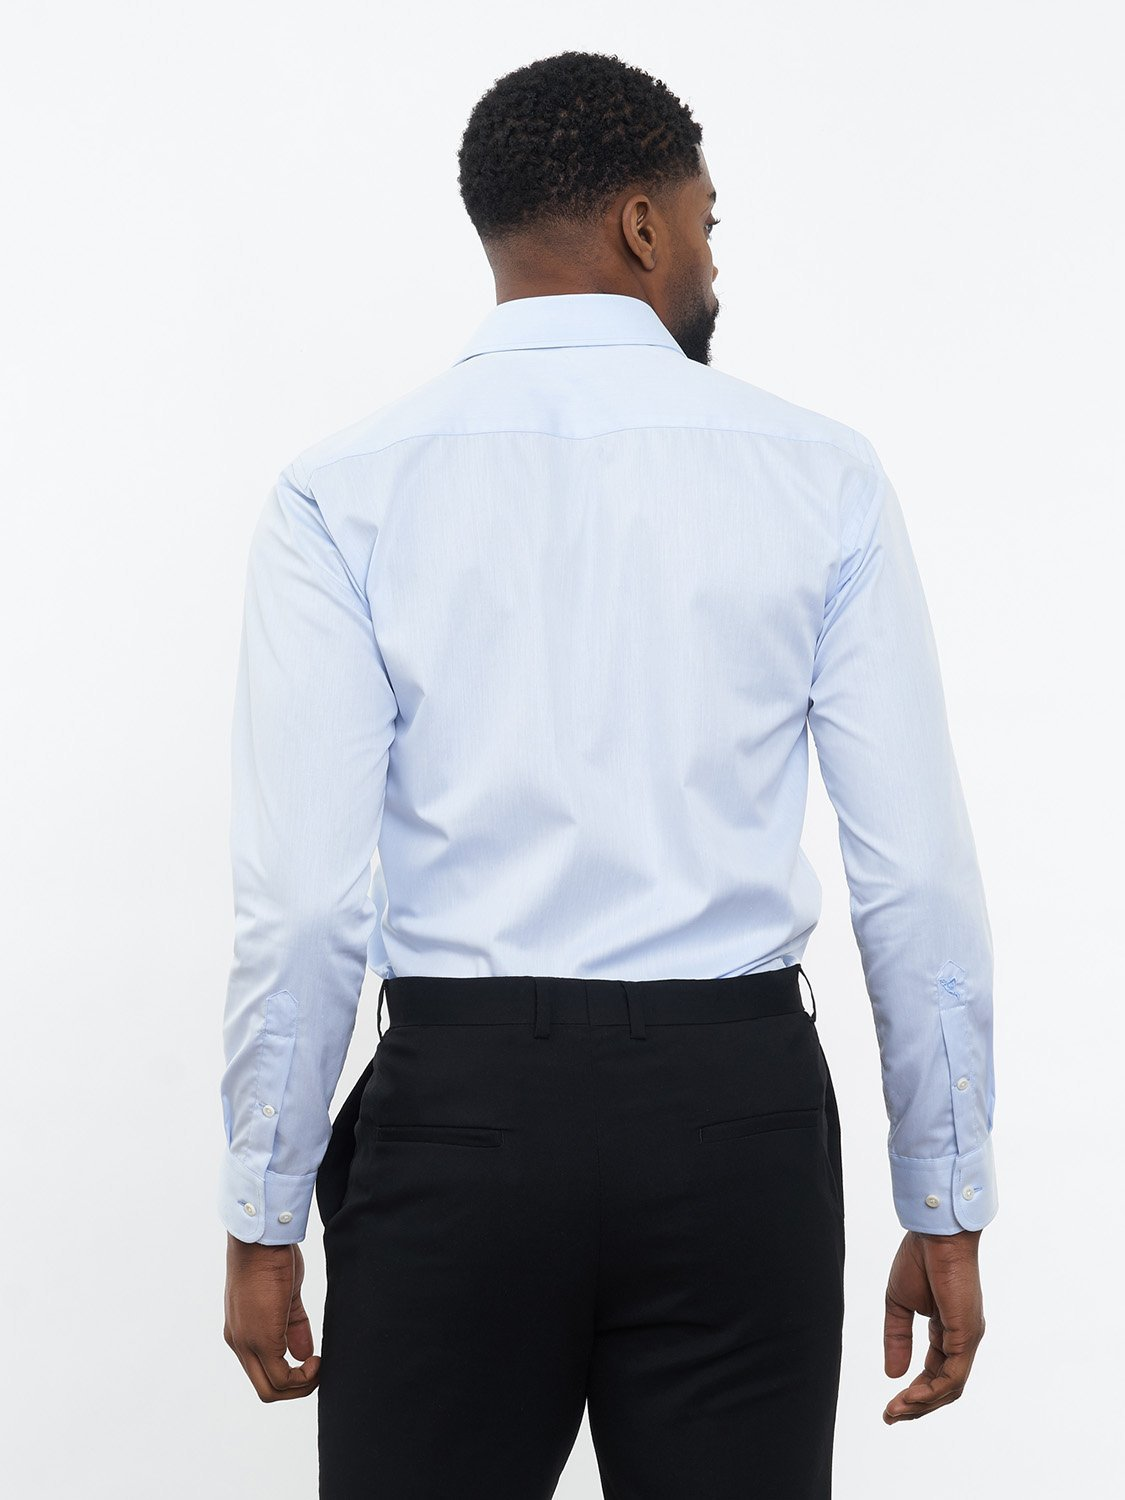 carpasus sustainable organic cotton tailor-made shirt blue. Nachhaltiges Carpasus Masshemd aus Bio Baumwolle in Blau